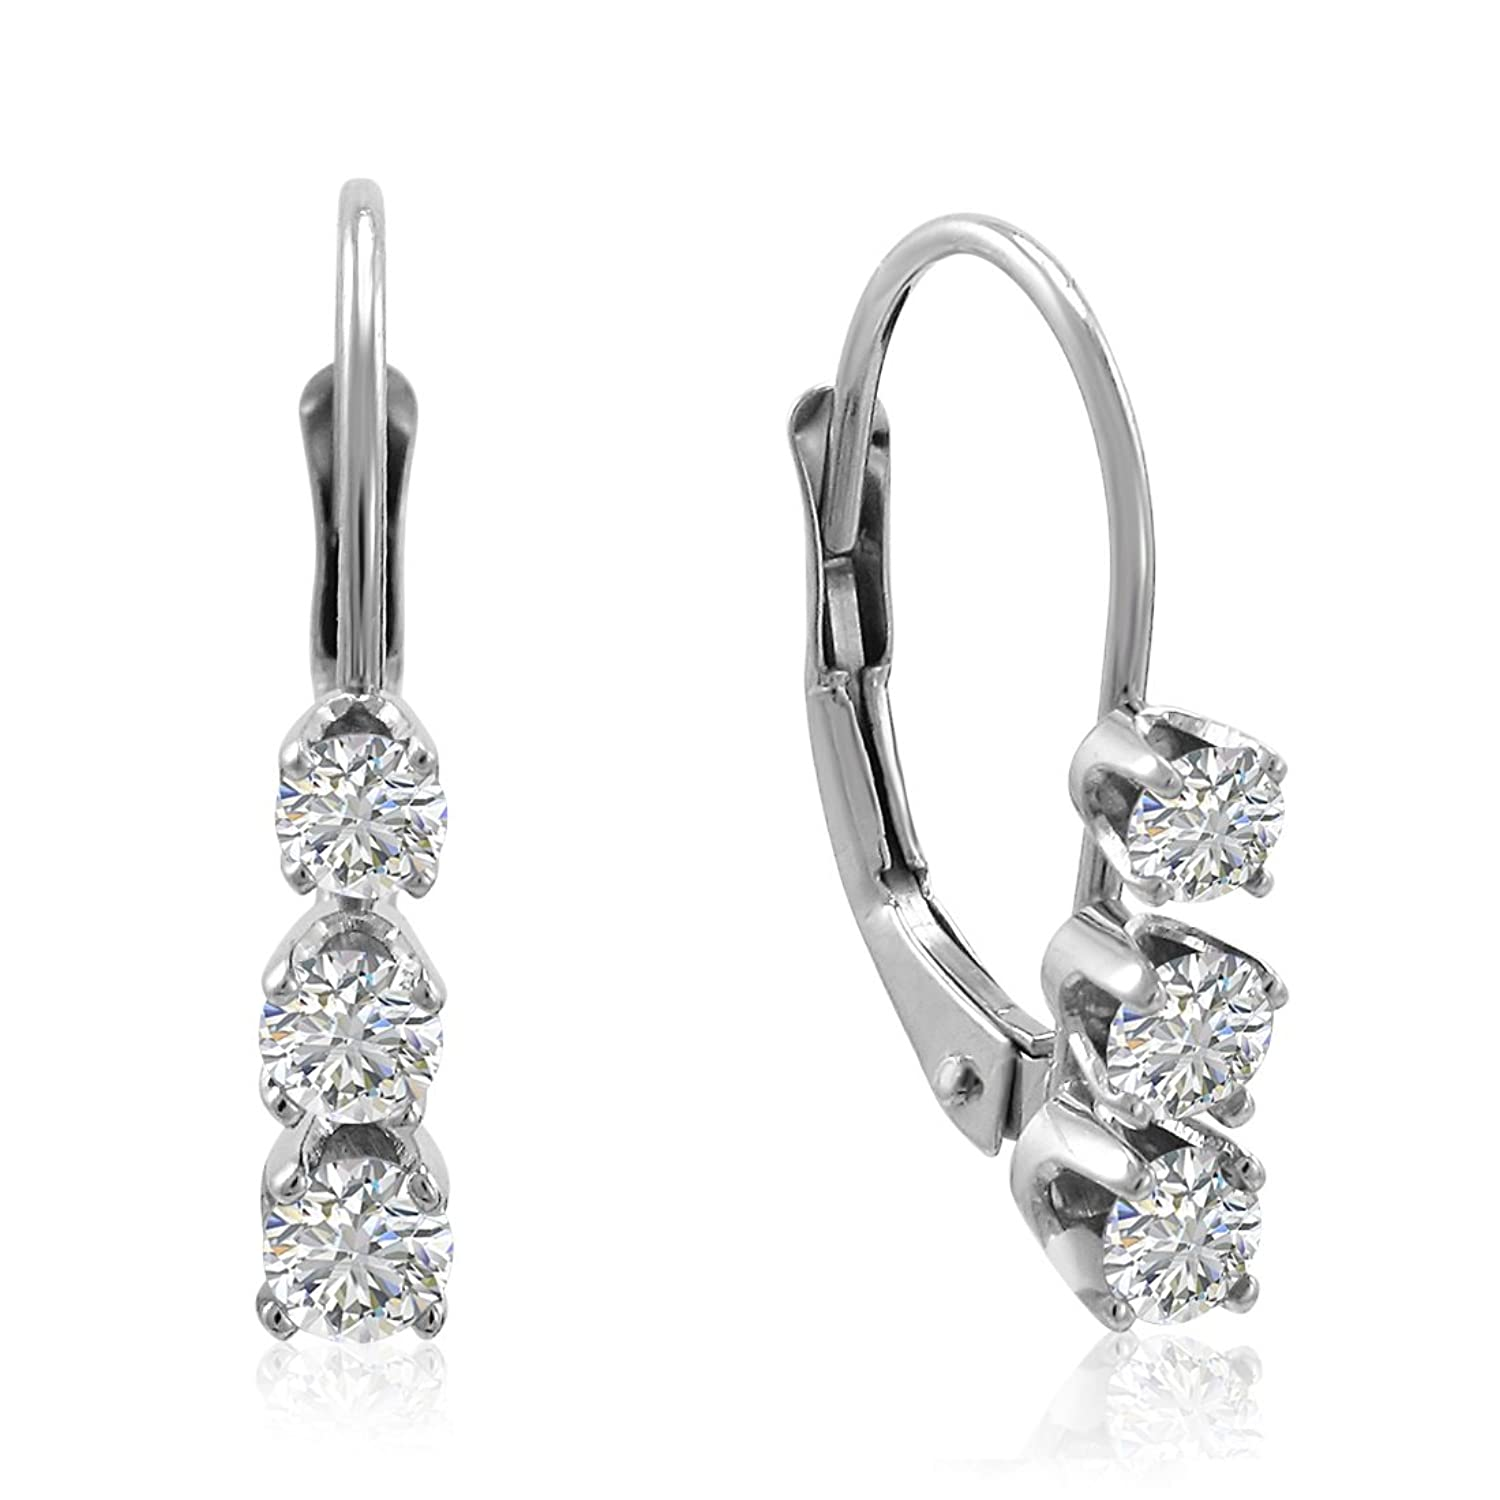 ctw in safi earings sterling silver kilima earrings tanzanite diamond products jewellery